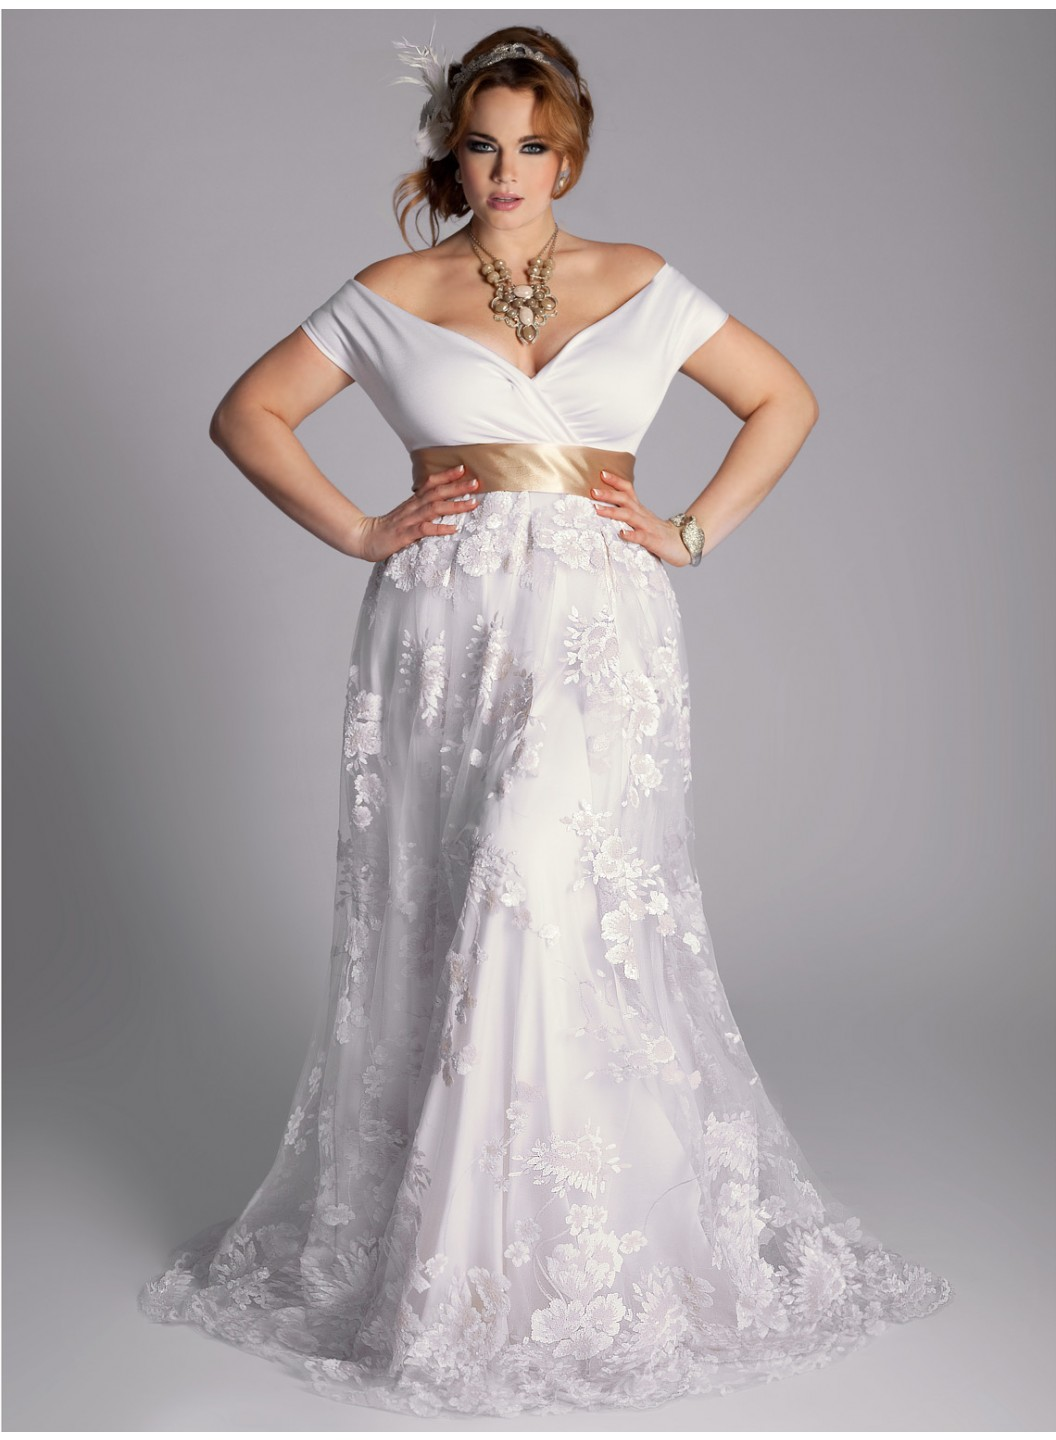 bras for plus size wedding dresses bras for wedding dresses Bras For Plus Size Wedding Dresses 61